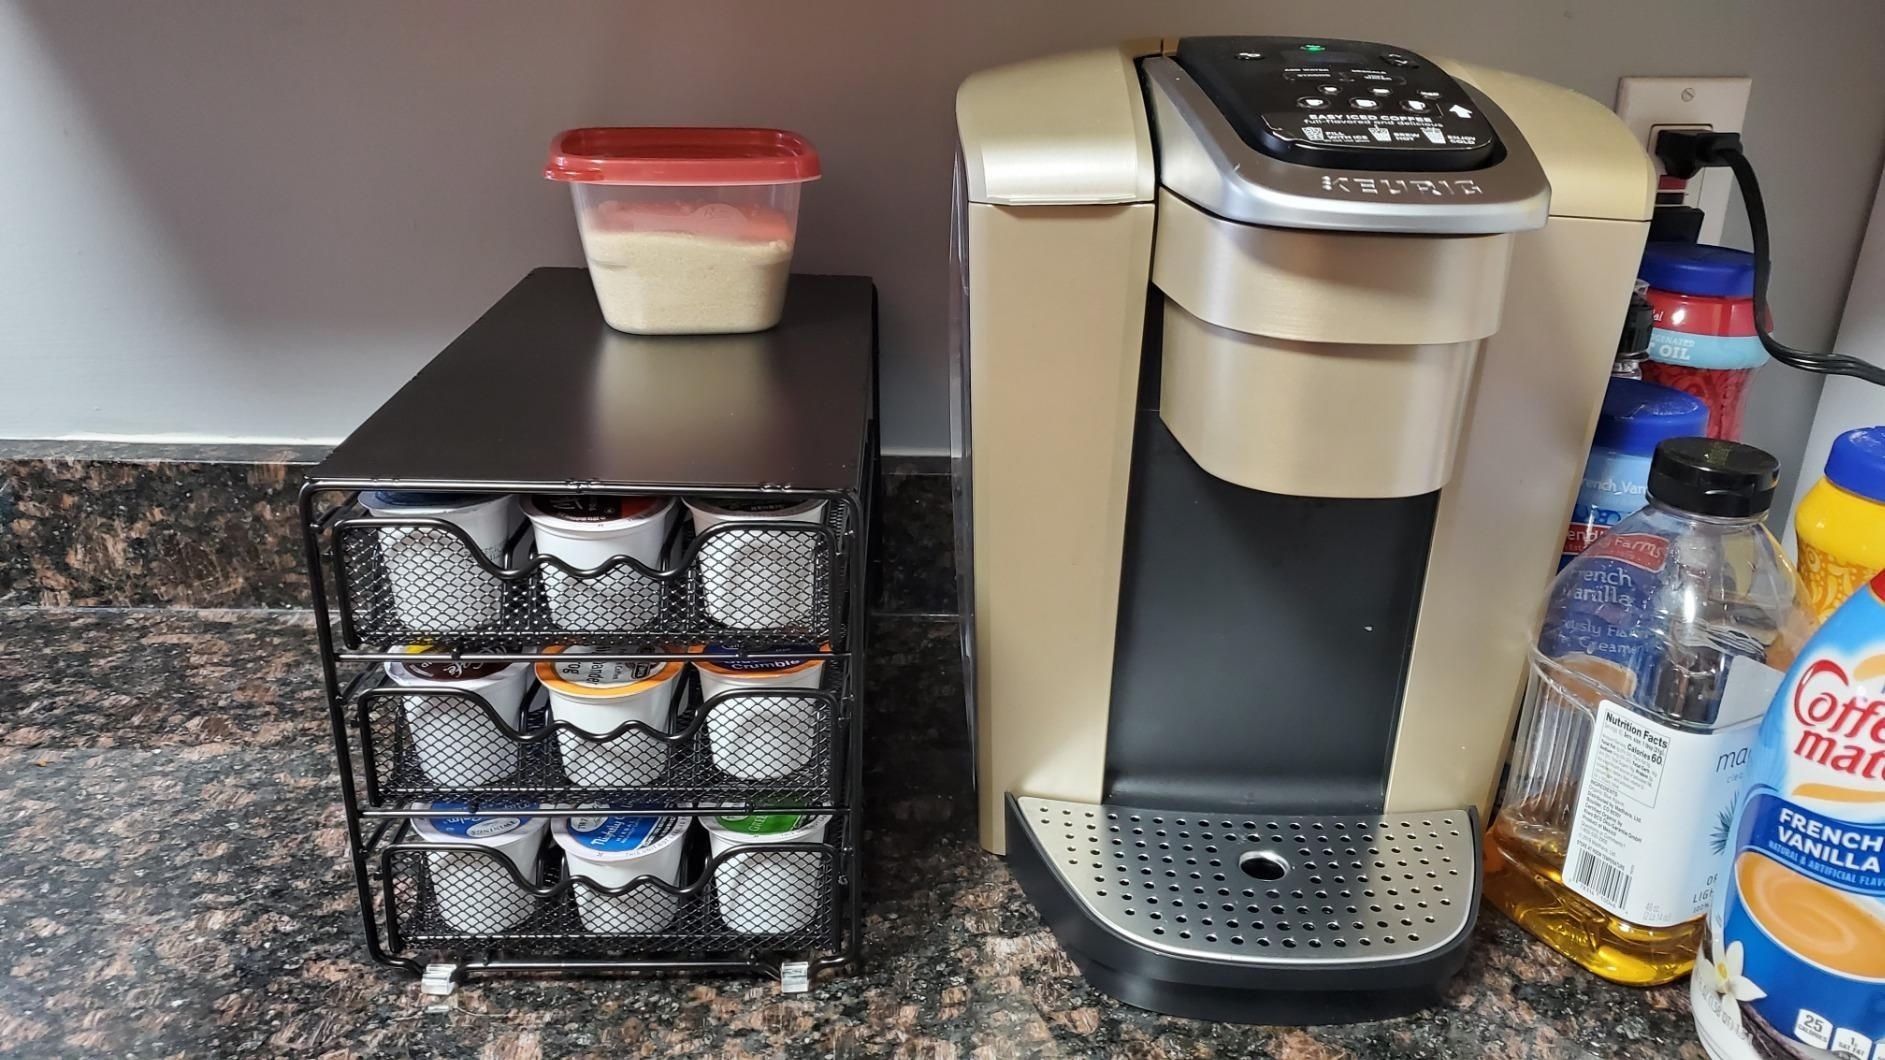 reviewer image of the K-cup organizer next to a keurig machine on a kitchen counter